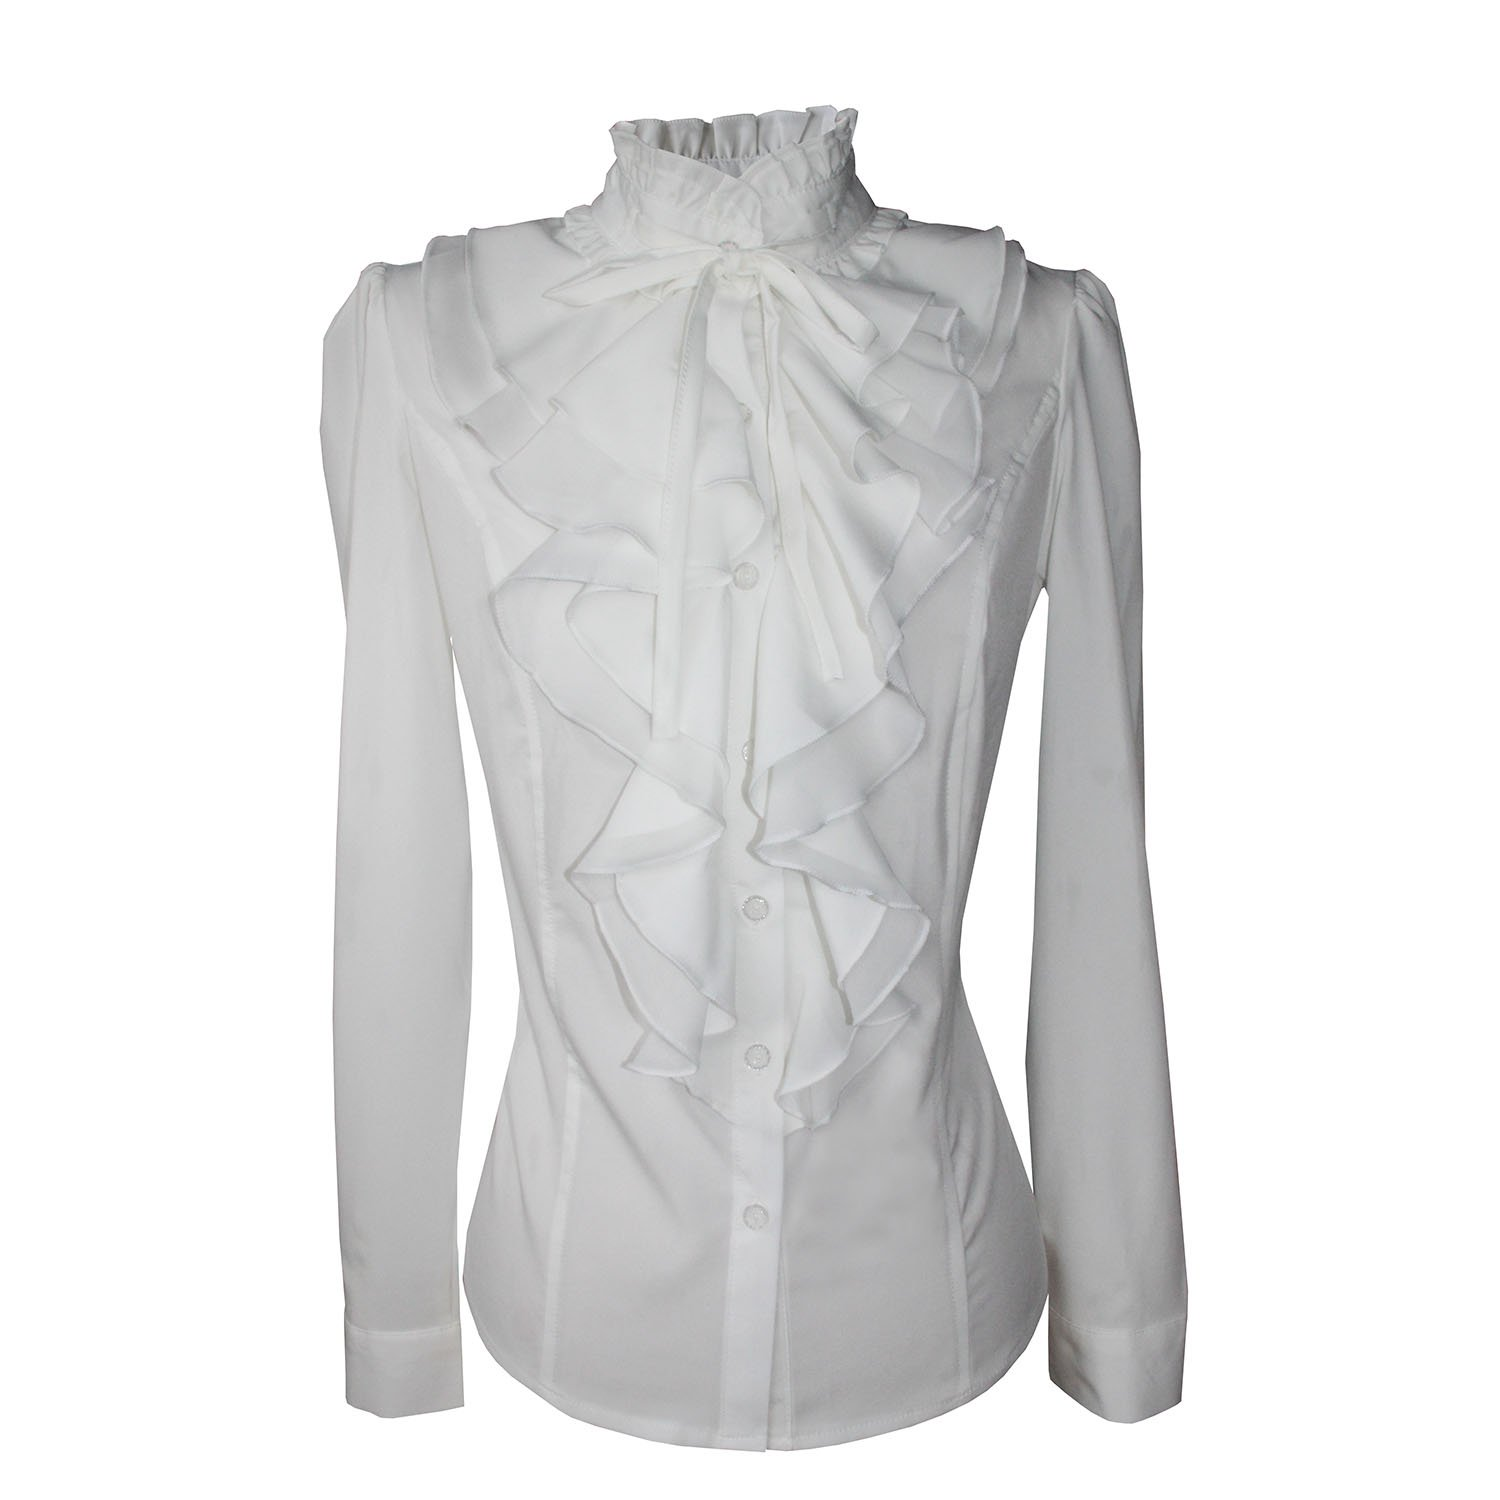 Victorian Blouses, Tops, Shirts, Sweaters Y&Z Shirts for Women Stand-up Collar Vintage Victoria Ruffle BS02 $18.99 AT vintagedancer.com